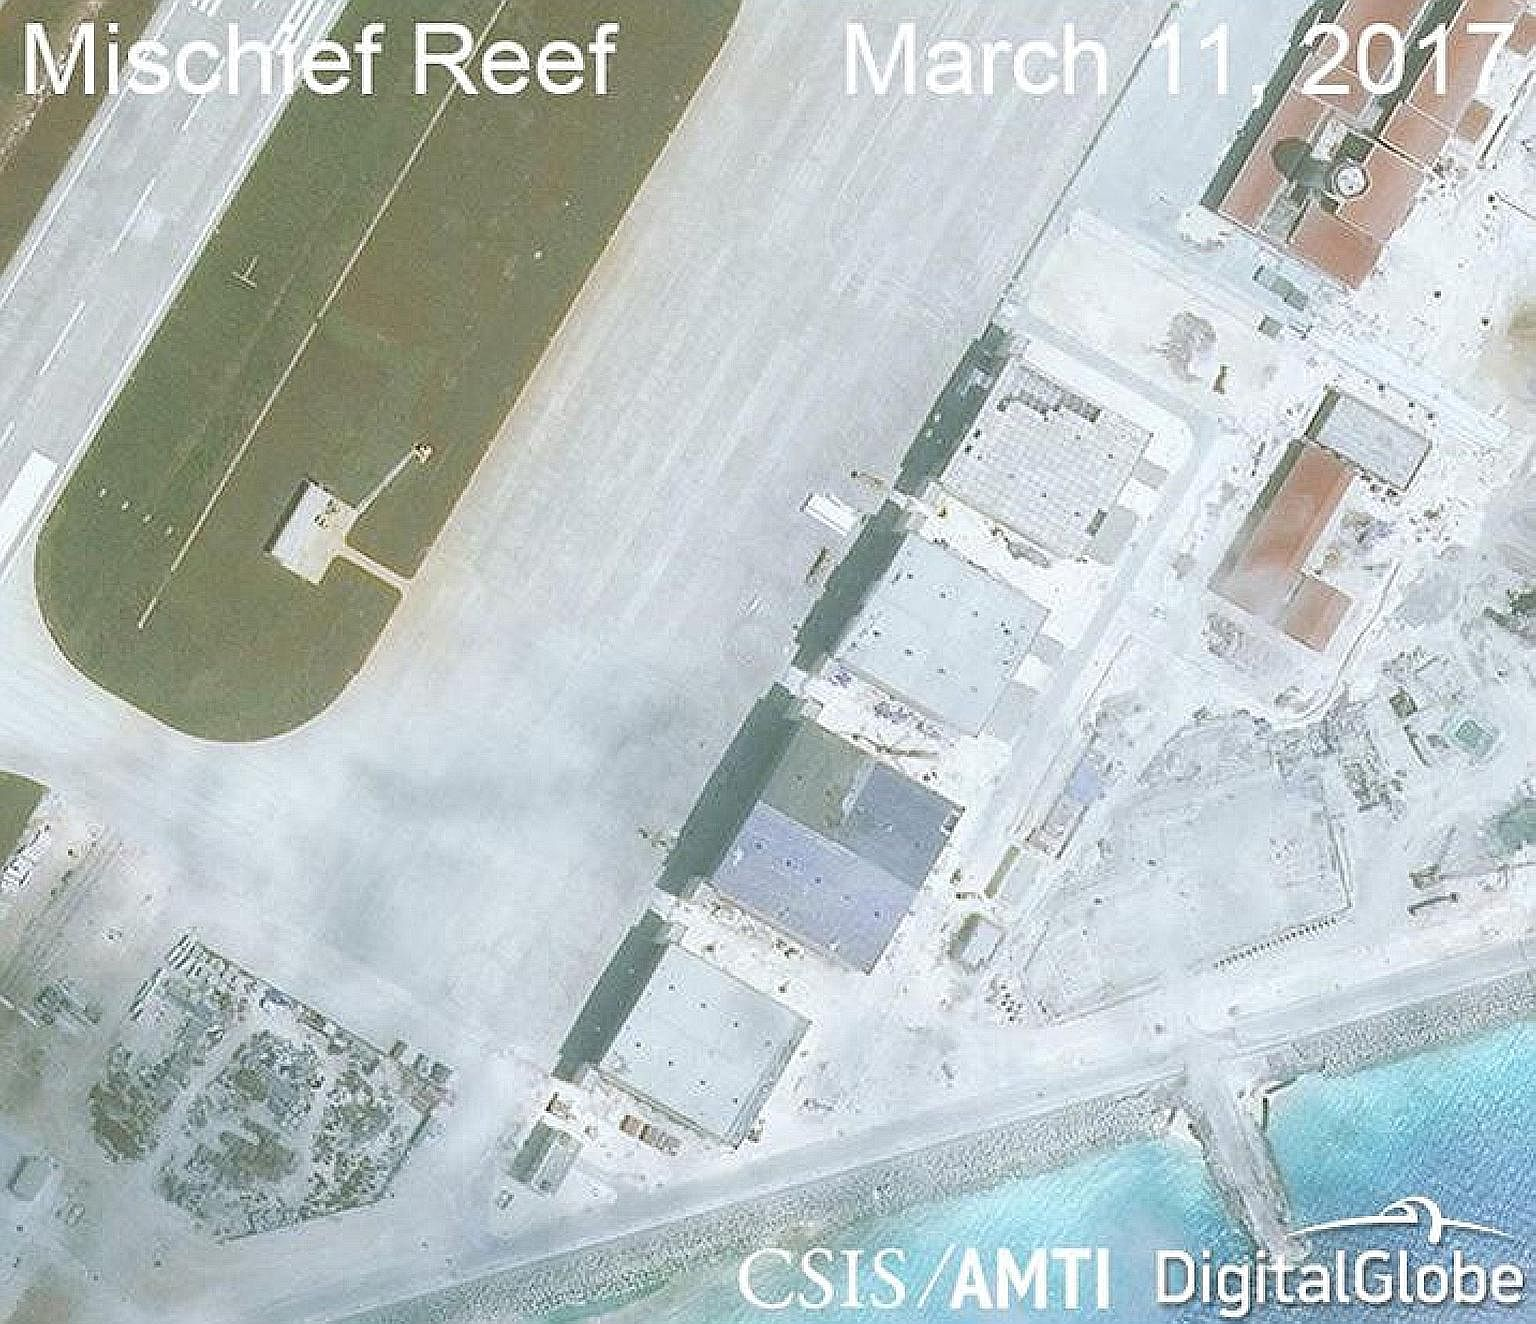 China has started construction work on several land features in the Spratly Island